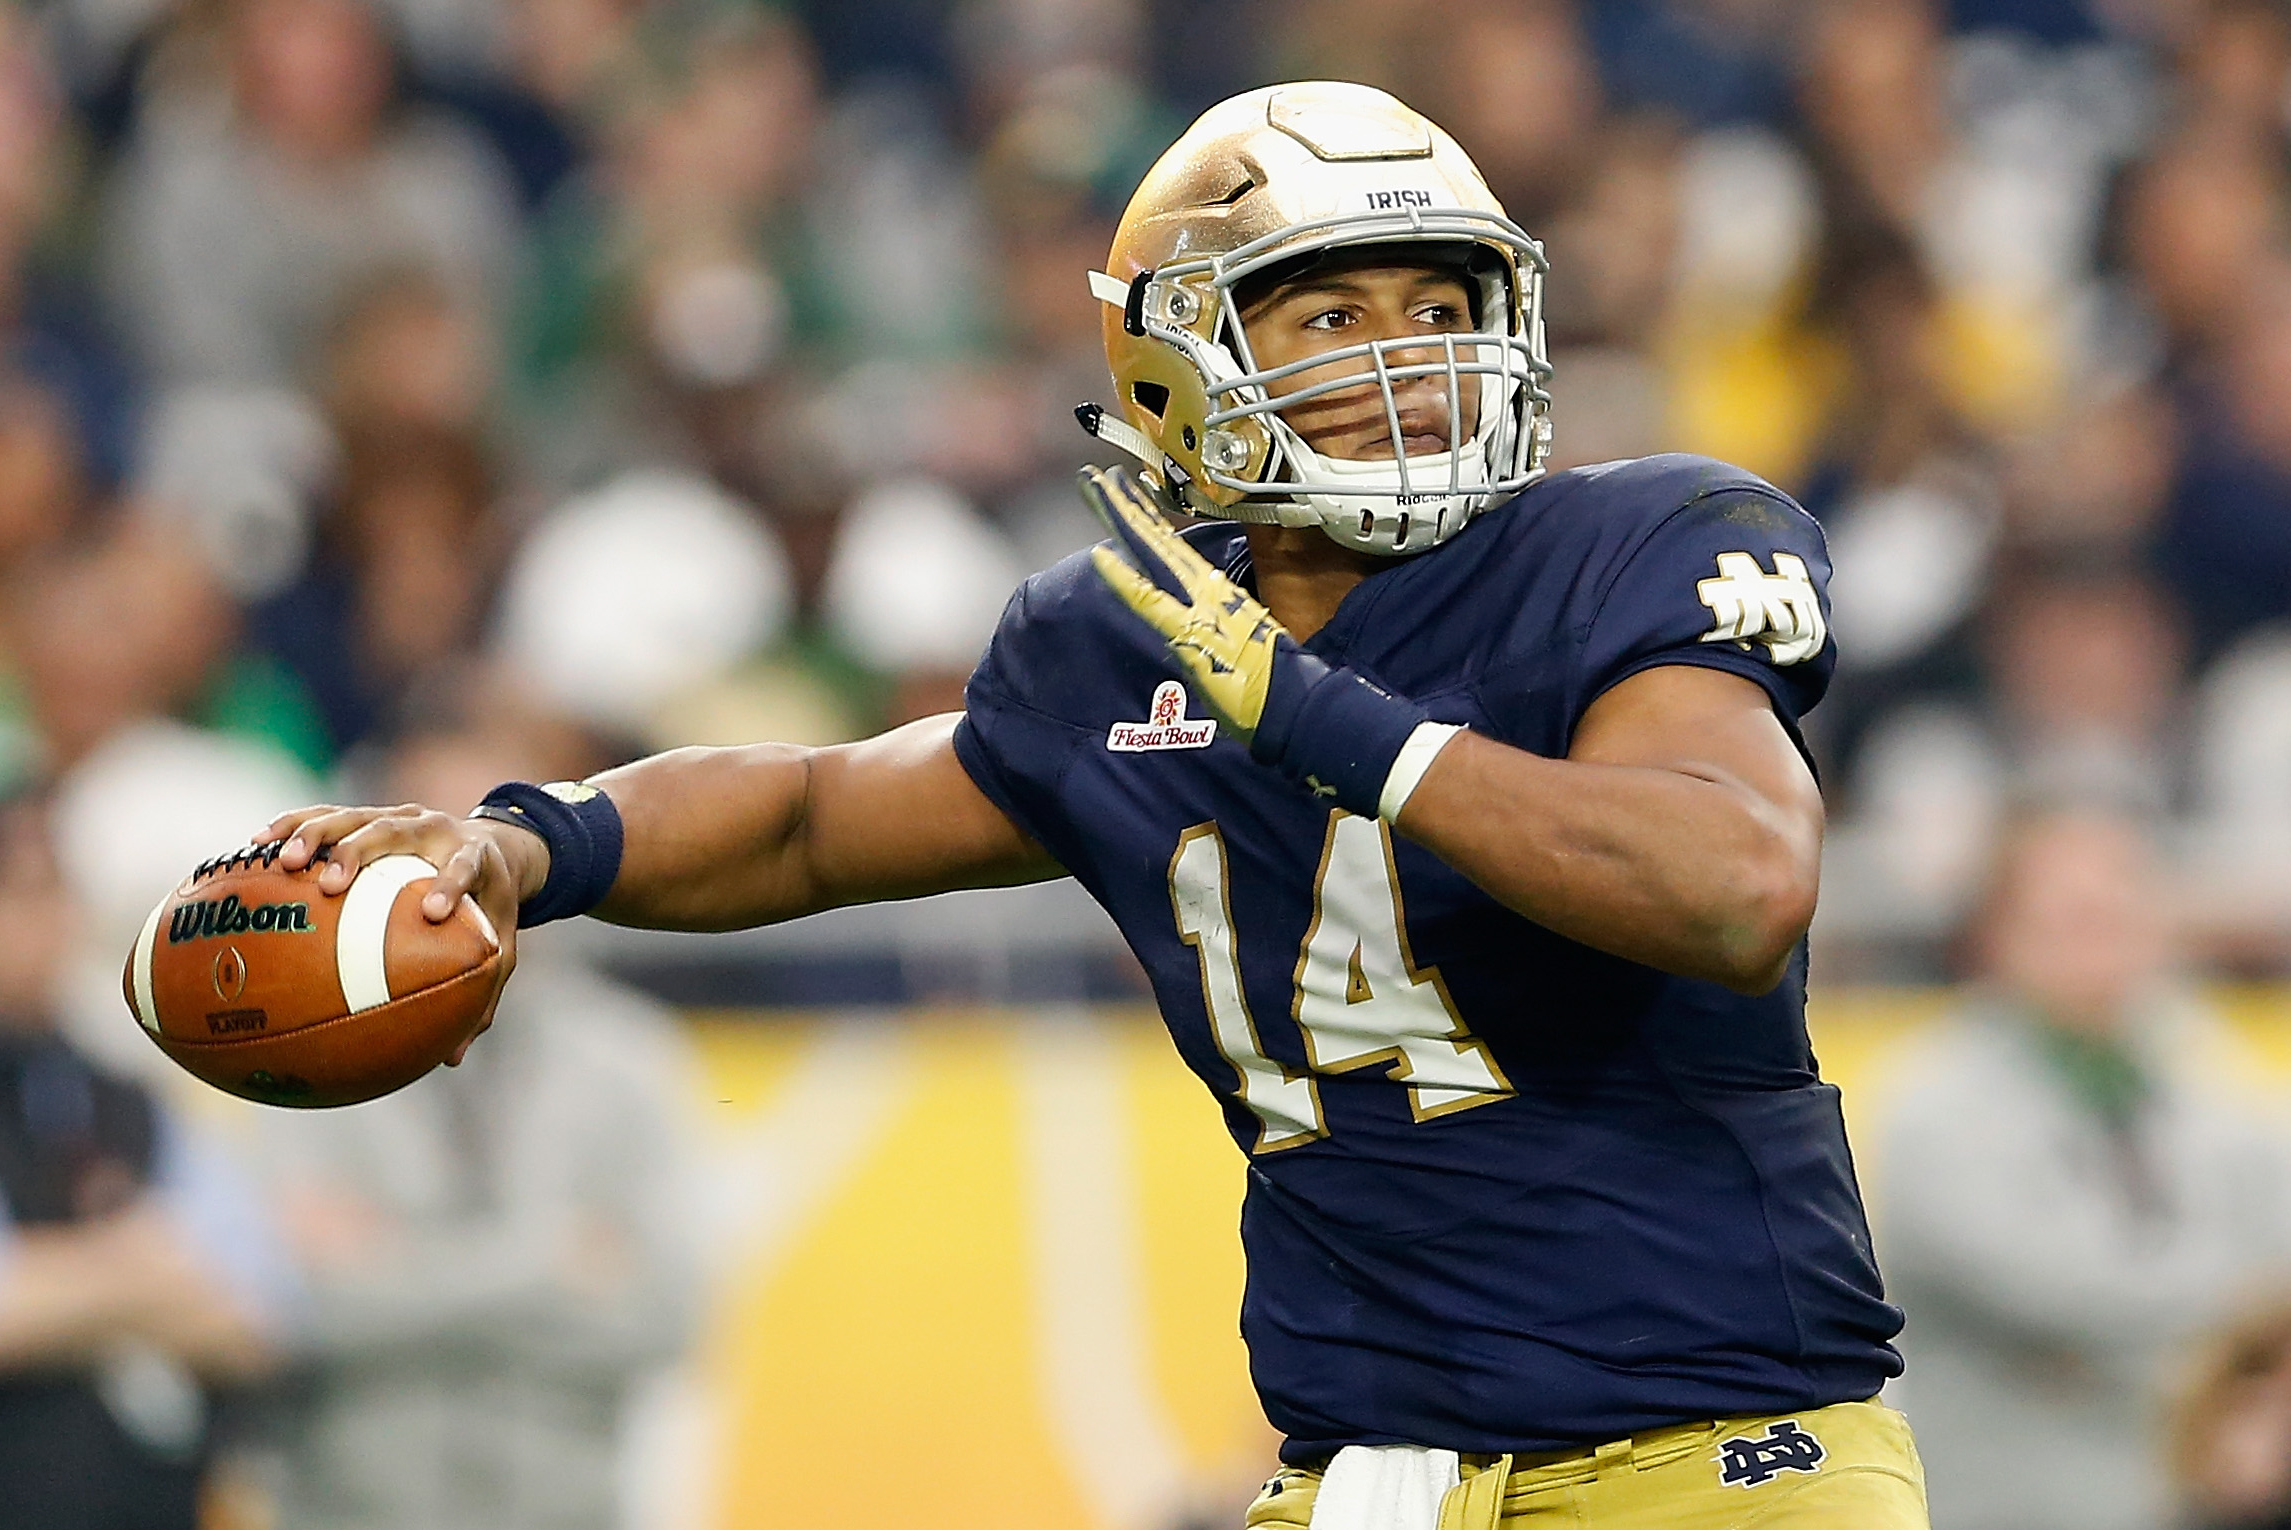 Notre Dame Football: What to Watch for from Irish's QBs in ...